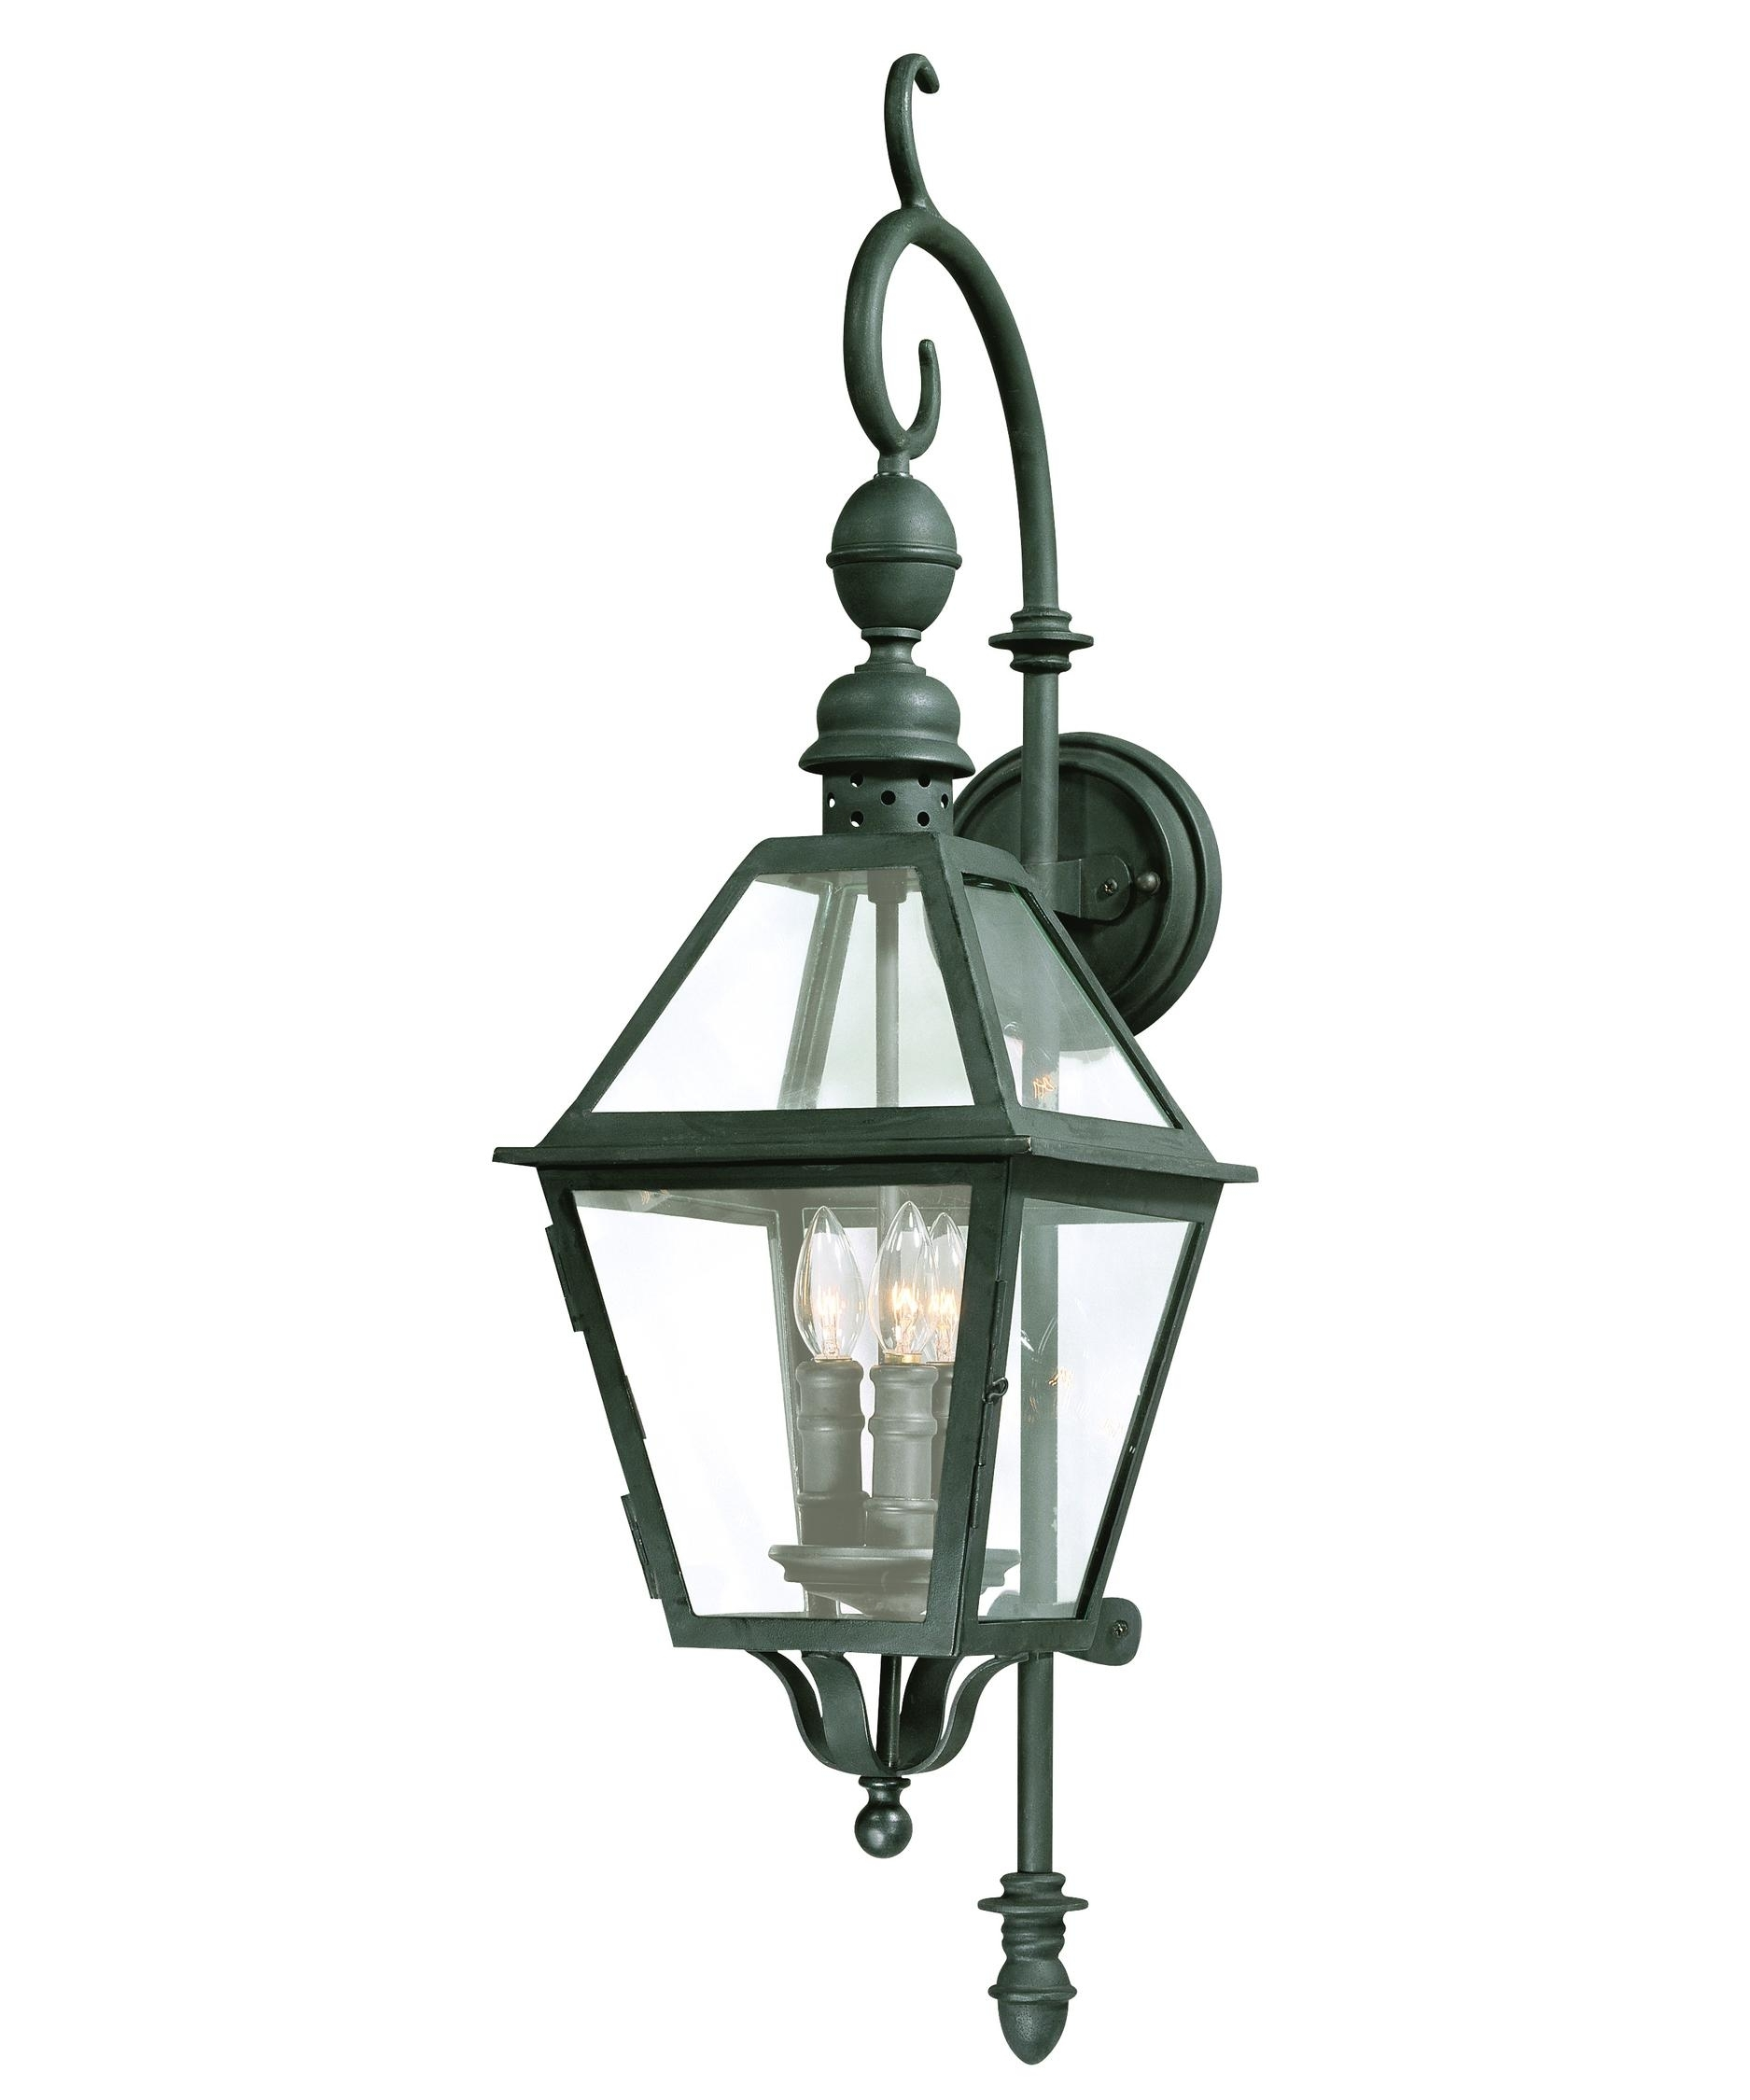 Troy Lighting B9621 Townsend 9 Inch Wide 3 Light Outdoor Wall Light Within Troy Lighting Outdoor Wall Sconces (#10 of 15)